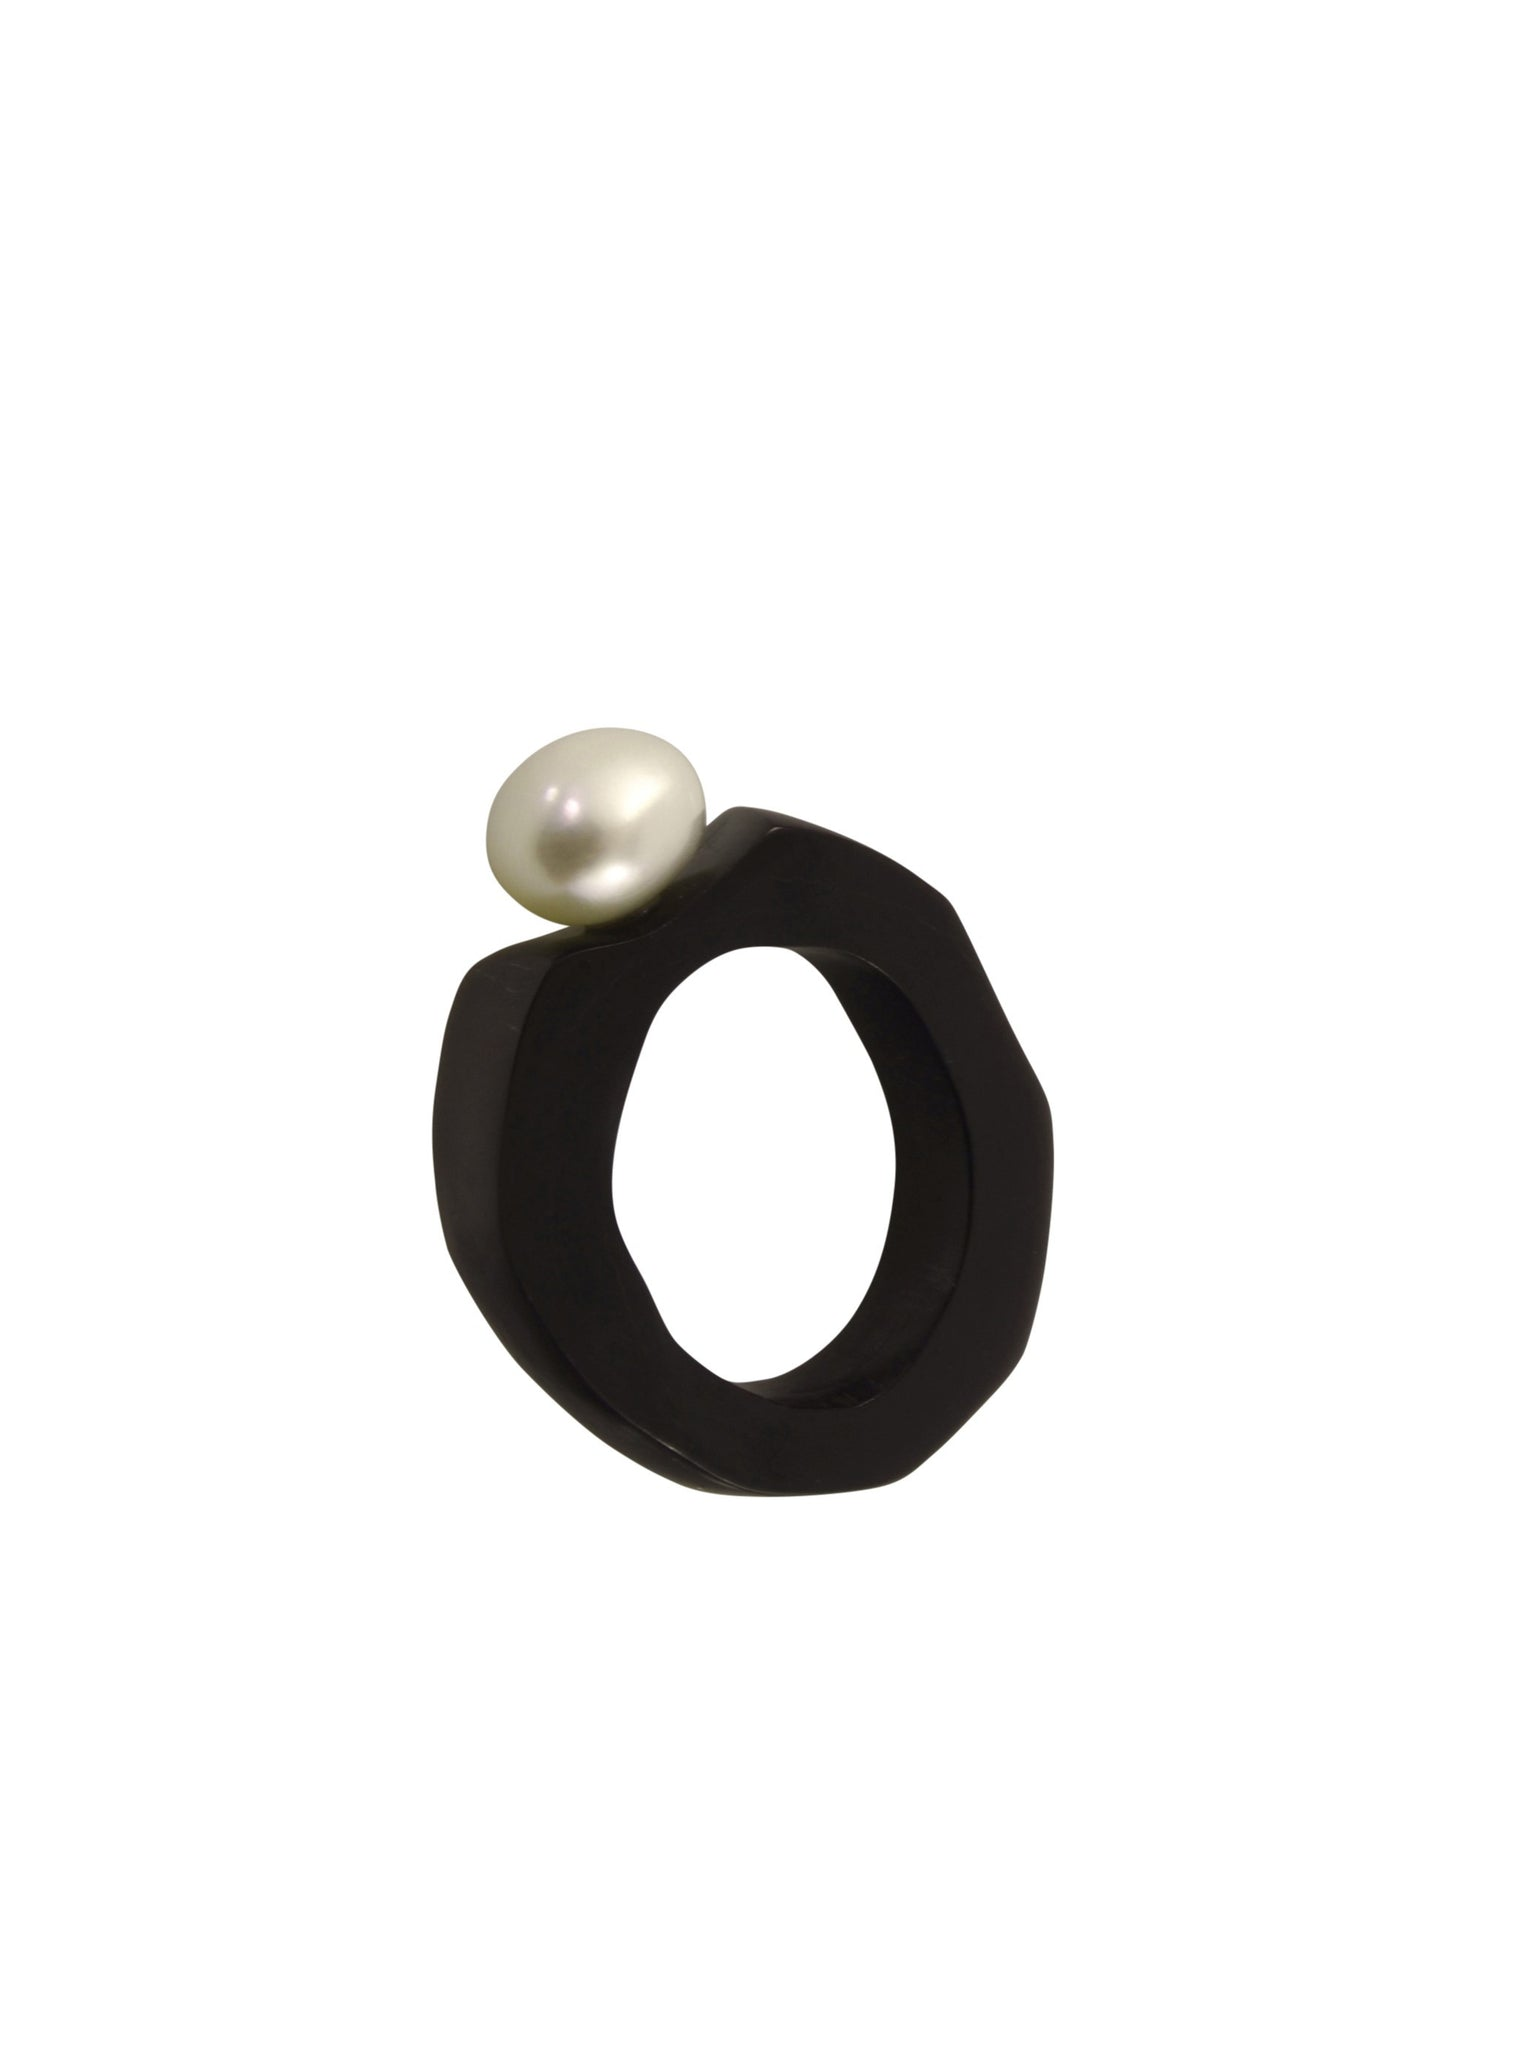 Polished buffalo horn is a wonderful material to wear in jewellery as it is so organic, light and warm to the touch. These rings are made from buffalo horn, pearl and sterling silver. Each one is custom made so please contact me for orders.